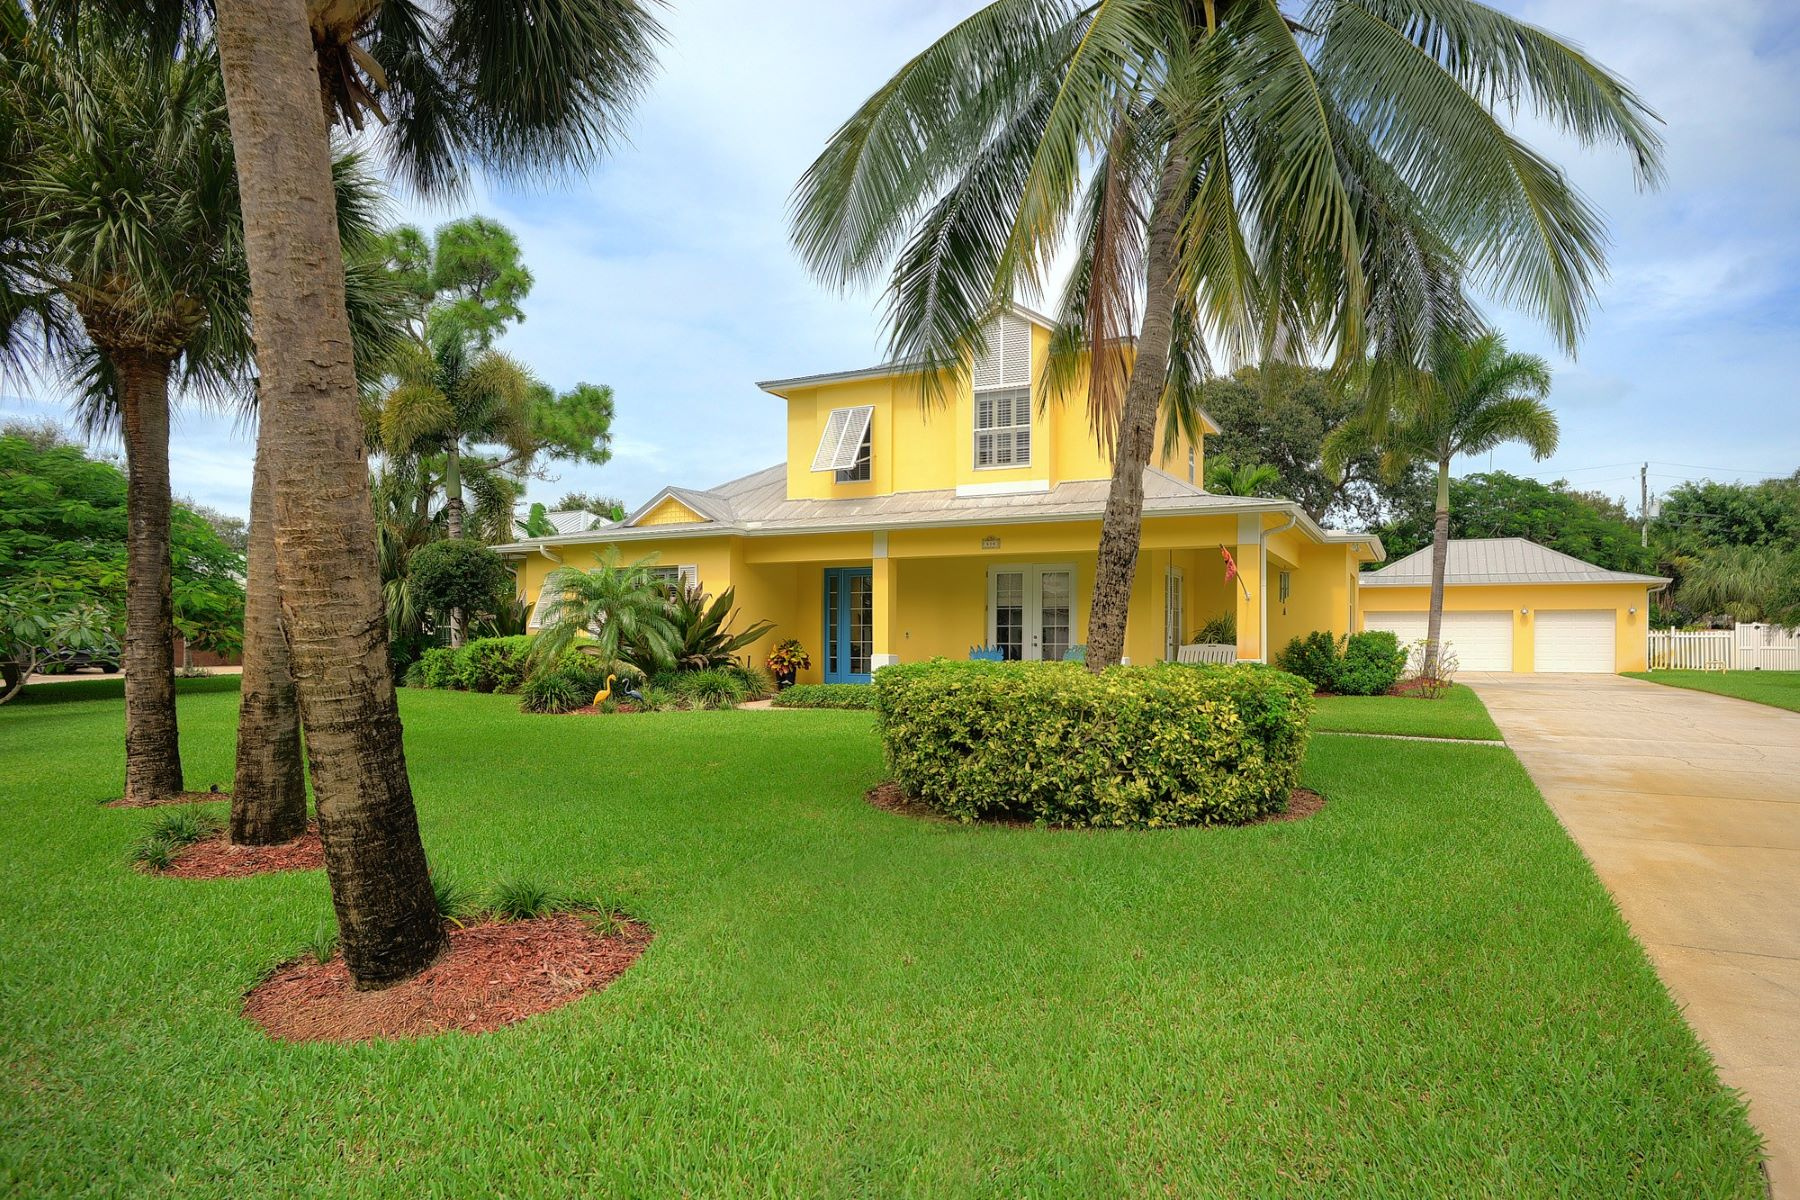 Property для того Продажа на 414 Miami Avenue, Indialantic, FL 414 Miami Avenue Indialantic, Флорида 32903 Соединенные Штаты